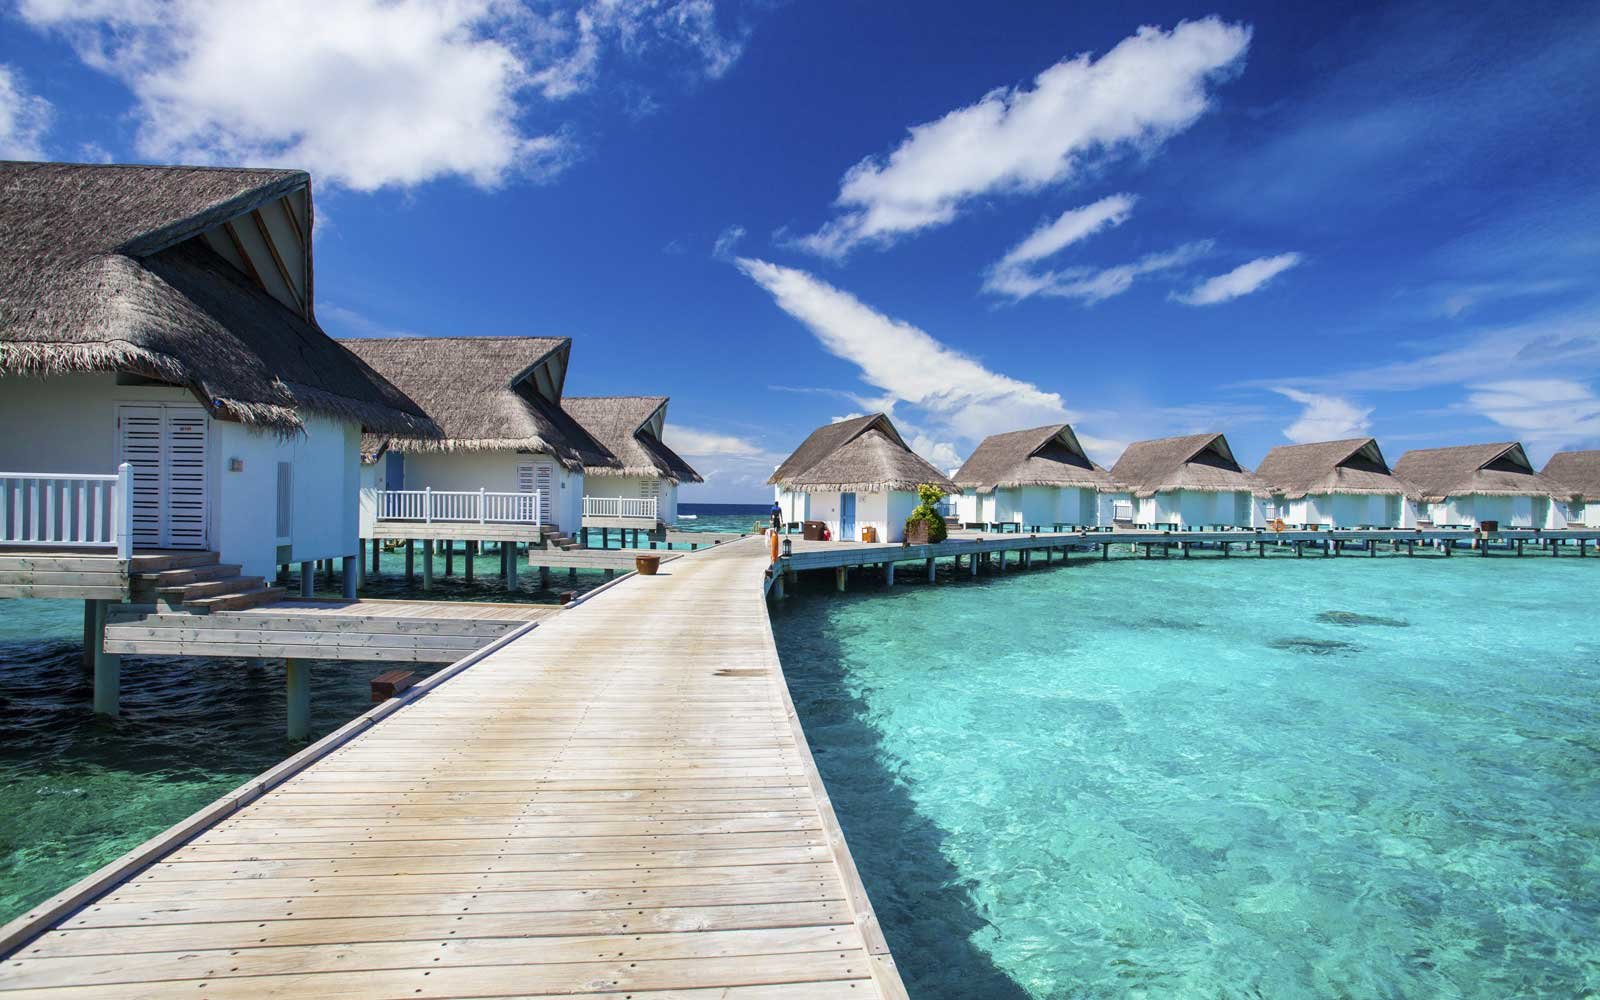 Centara Grand Island Resort Maldives